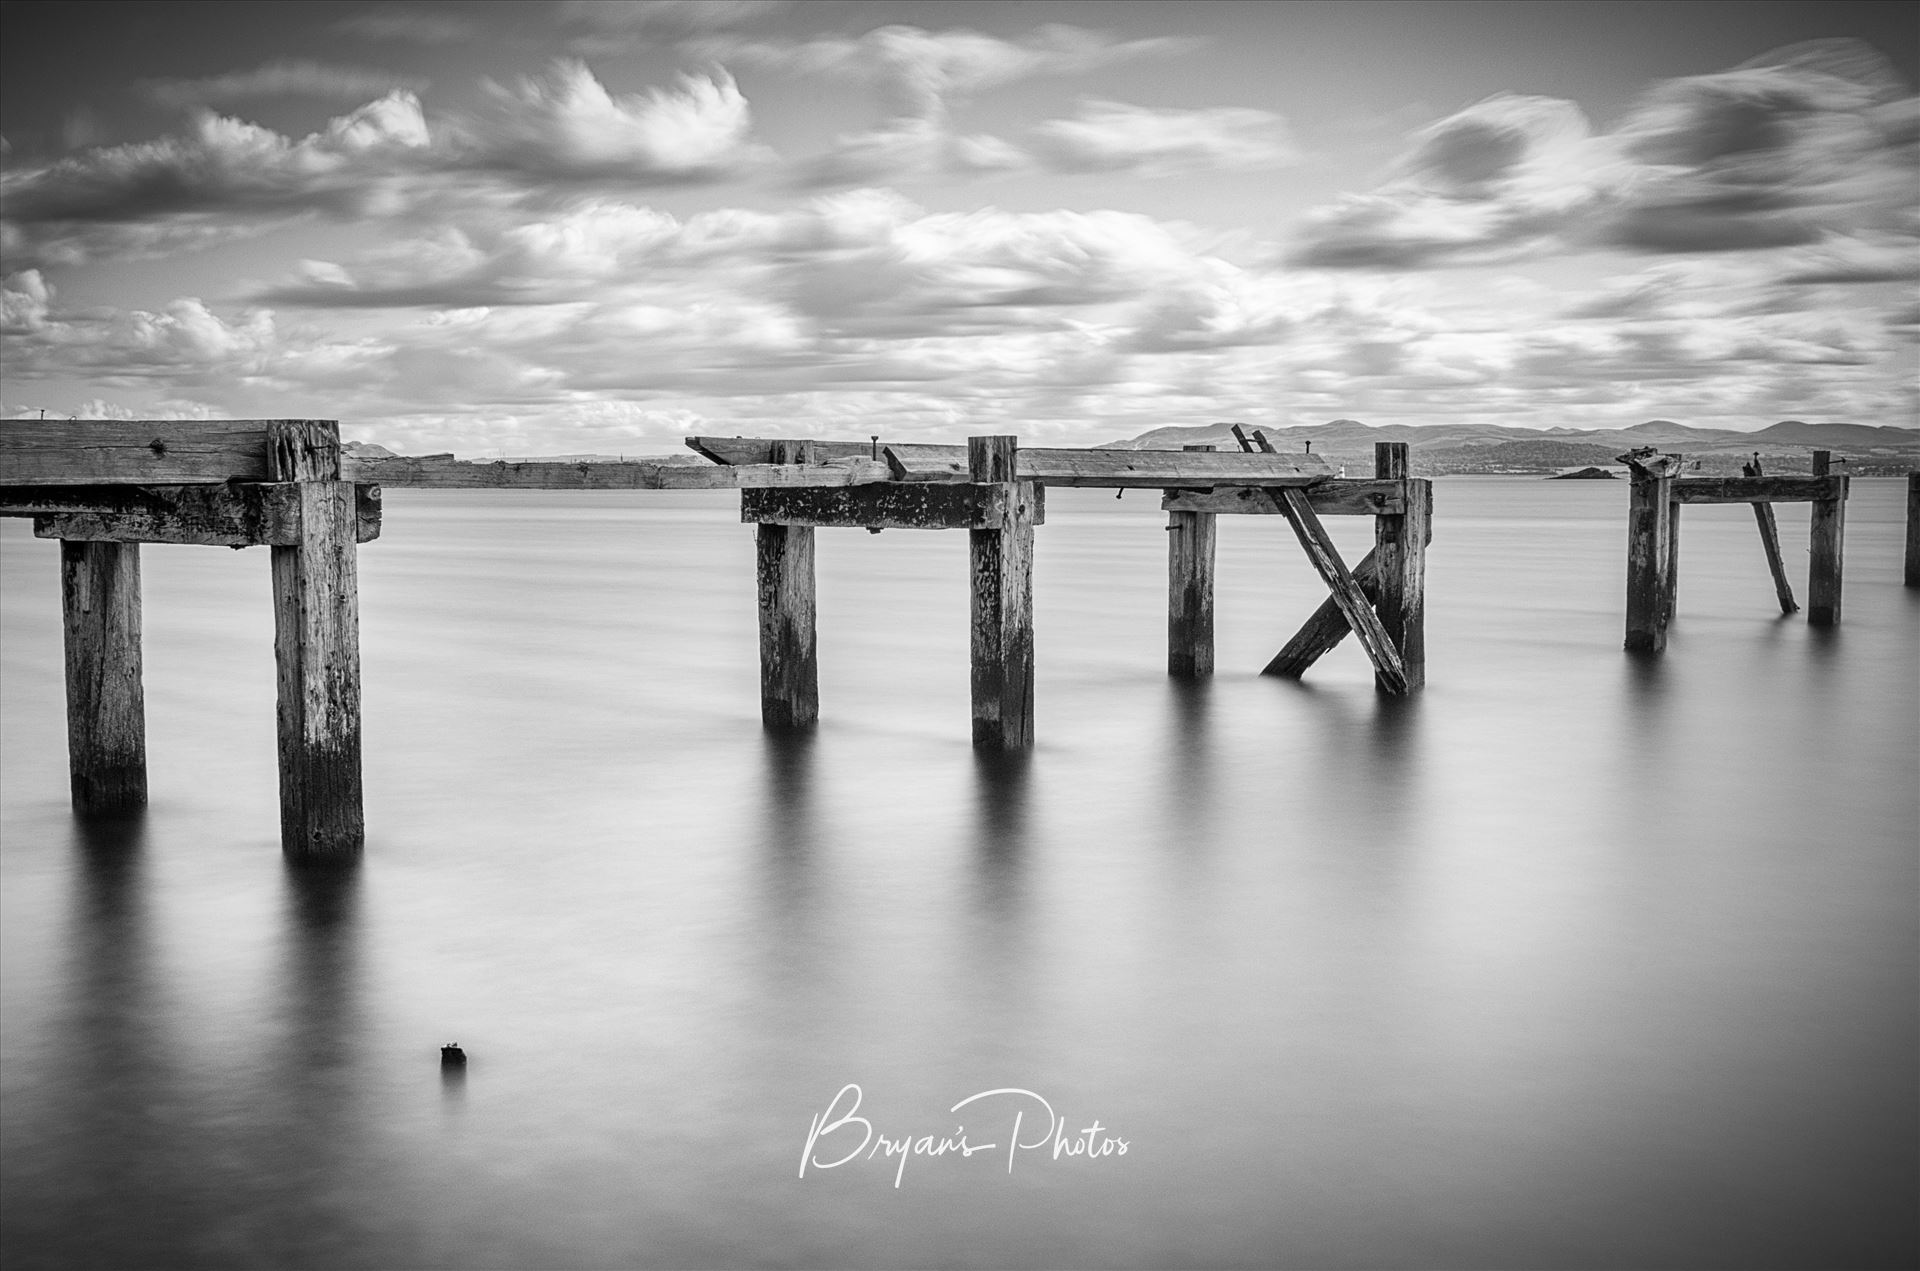 Aberdour A black and white photograph of the old abandoned pier at Aberdour on the Fife coast. by Bryans Photos